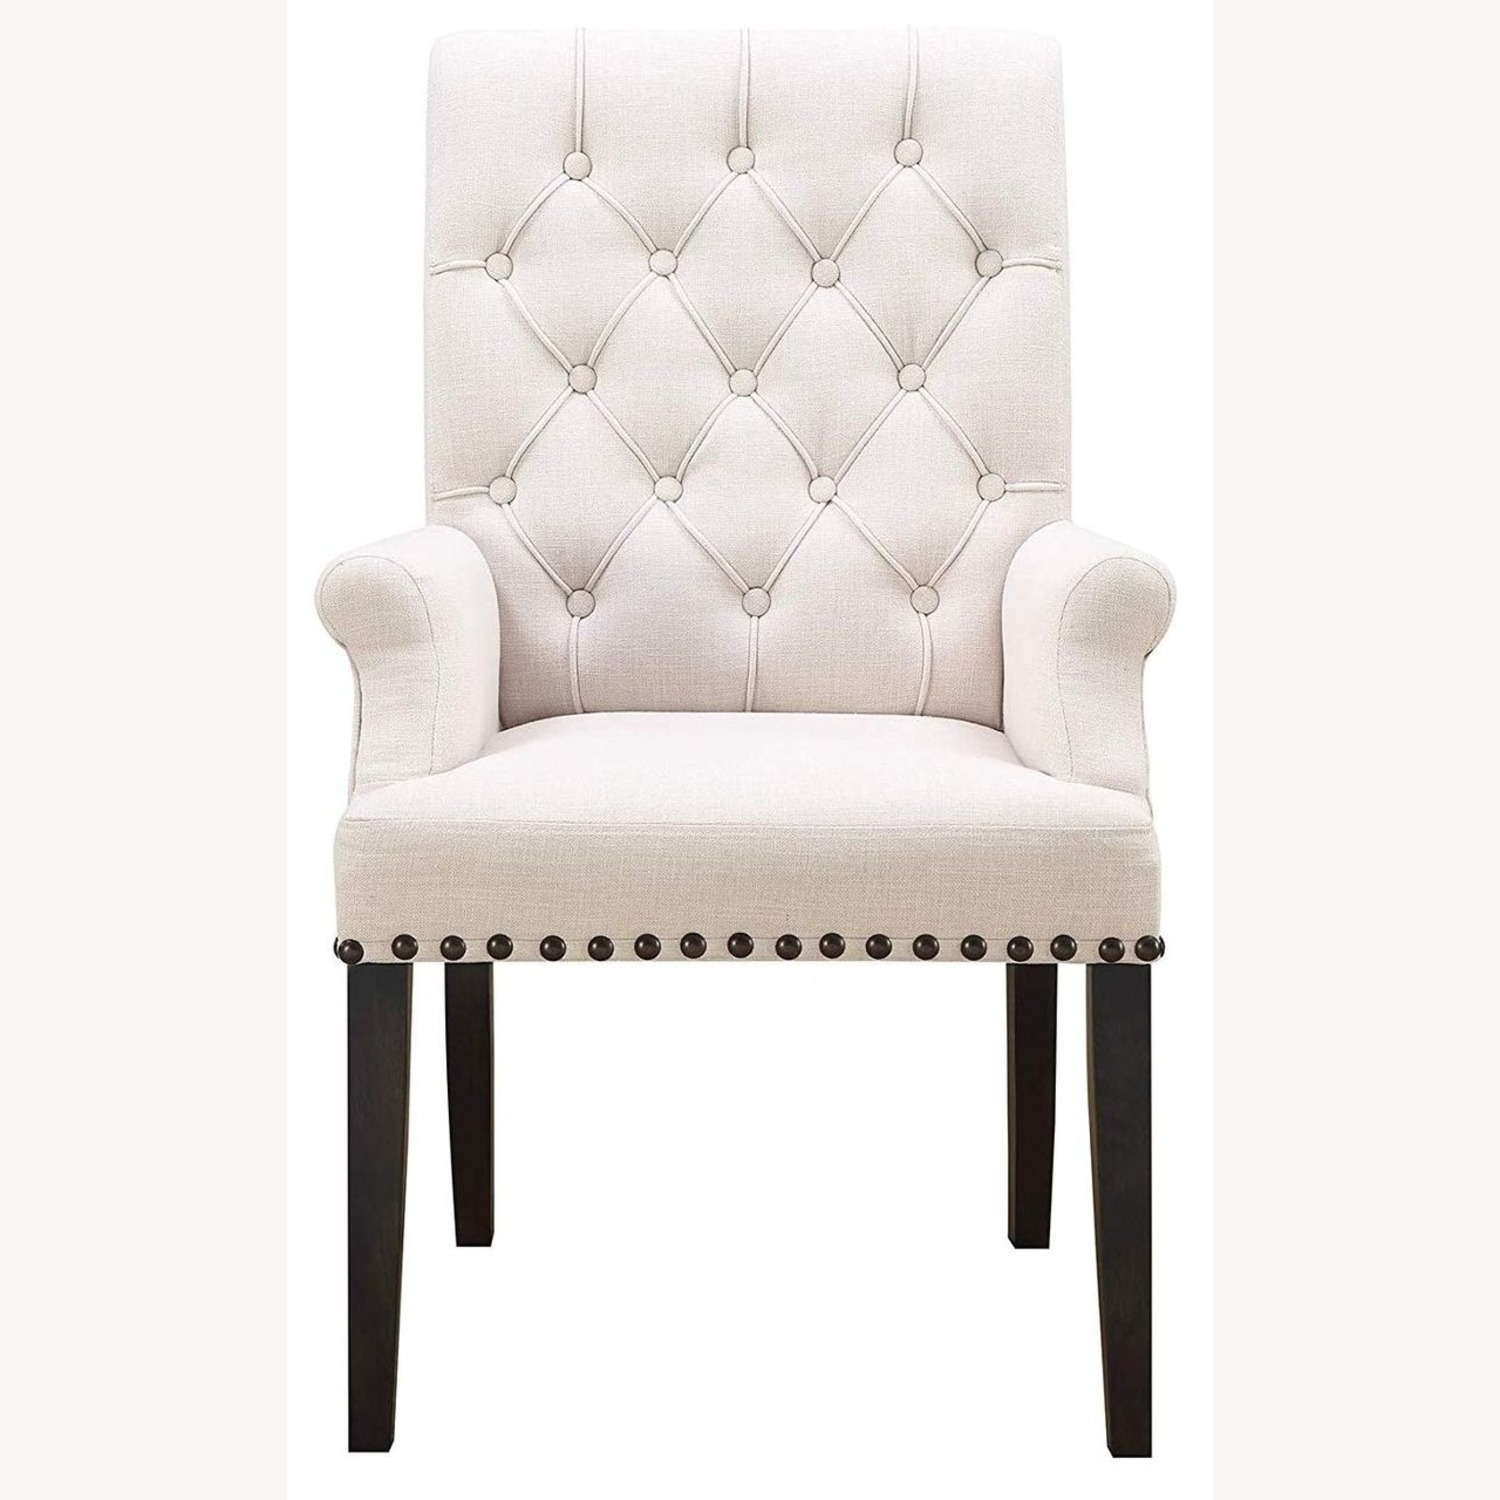 Modern Arm Chair In Beige Fabric - image-1